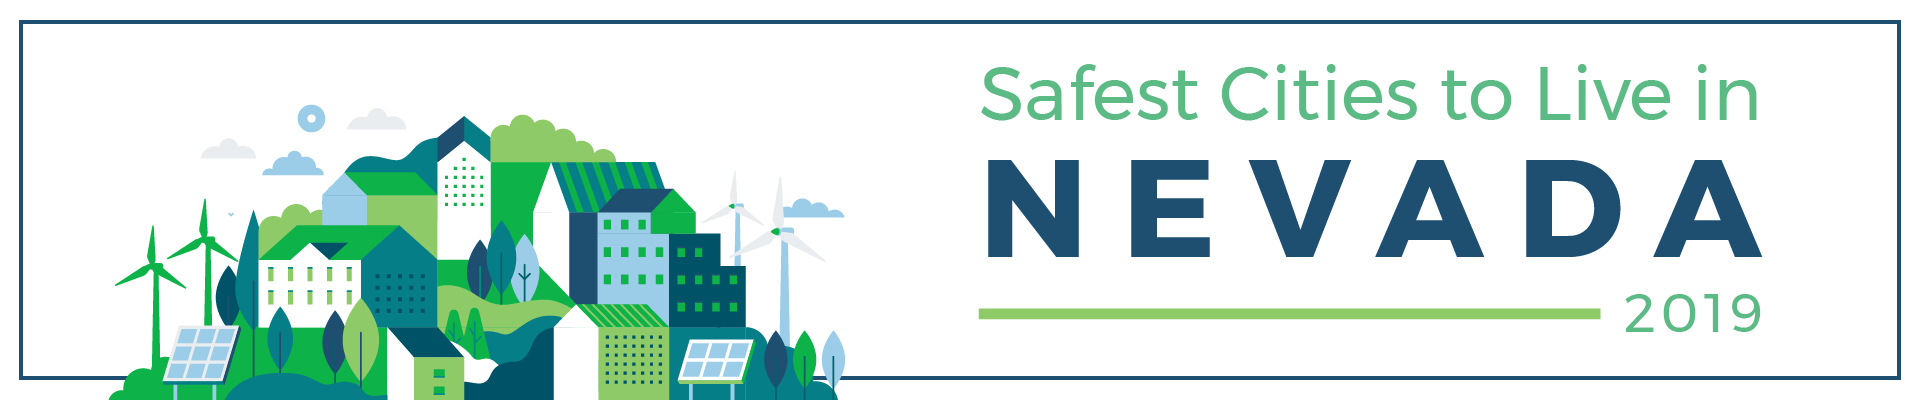 header - safest_cities_nevada_2019